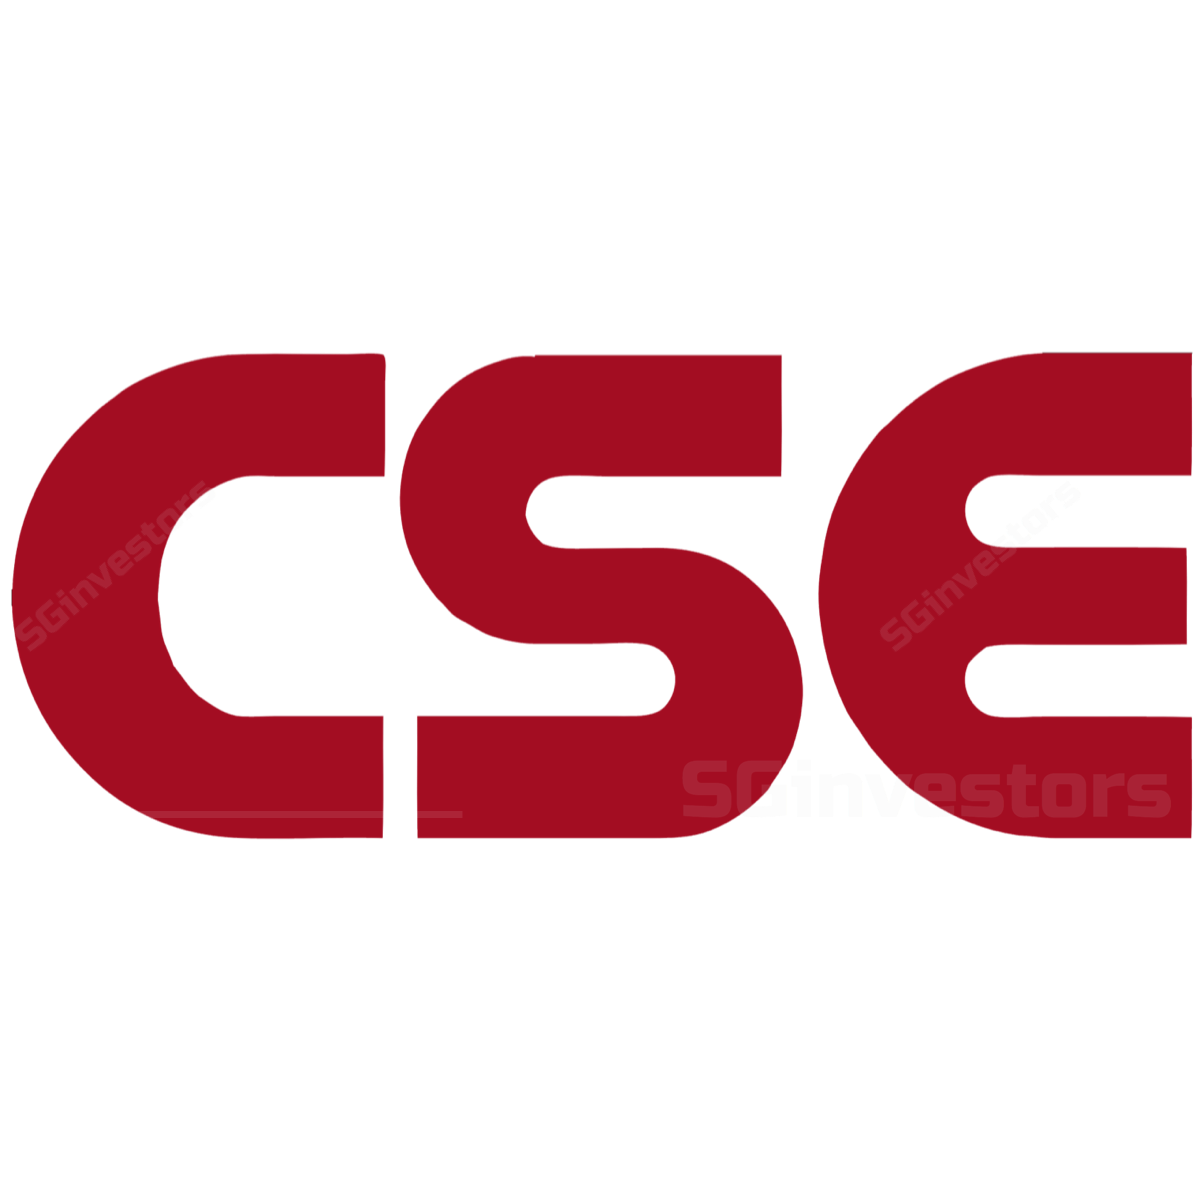 CSE Global - CIMB Research 2017-03-12: Heralding the return of contract wins